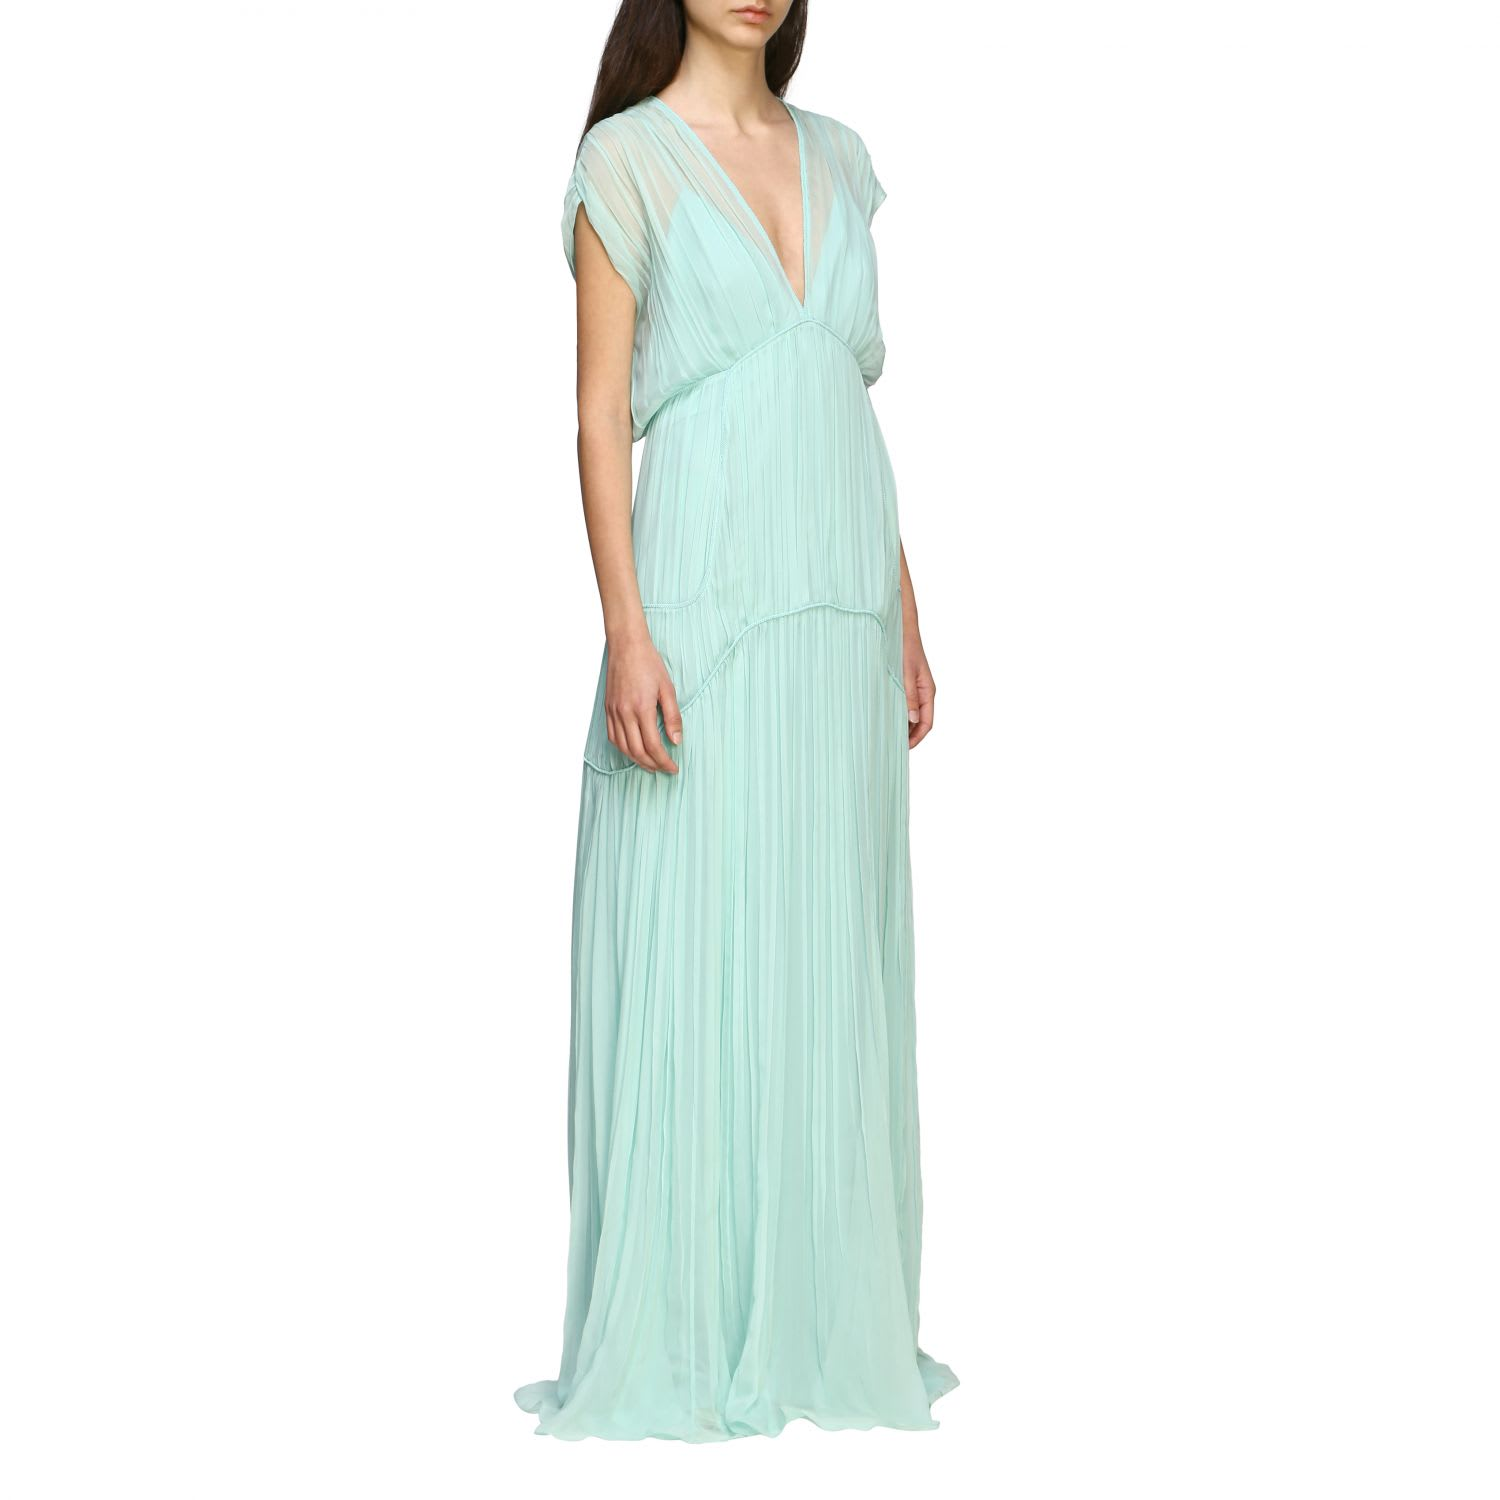 Buy Alberta Ferretti Dress Alberta Ferretti Maxi Dress In Chiffon online, shop Alberta Ferretti with free shipping